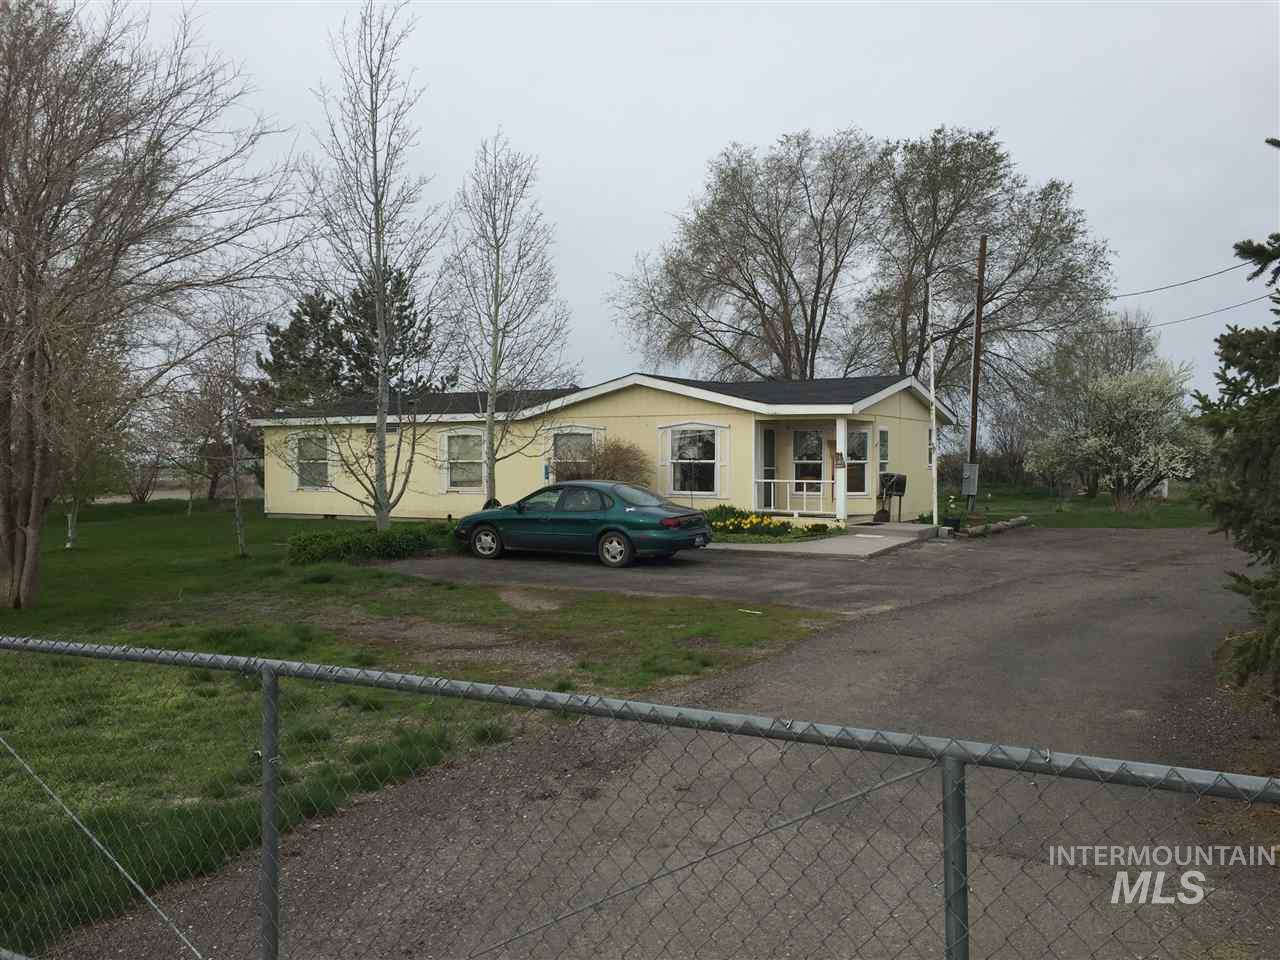 3009 S 2000 E., Wendell, ID 83355